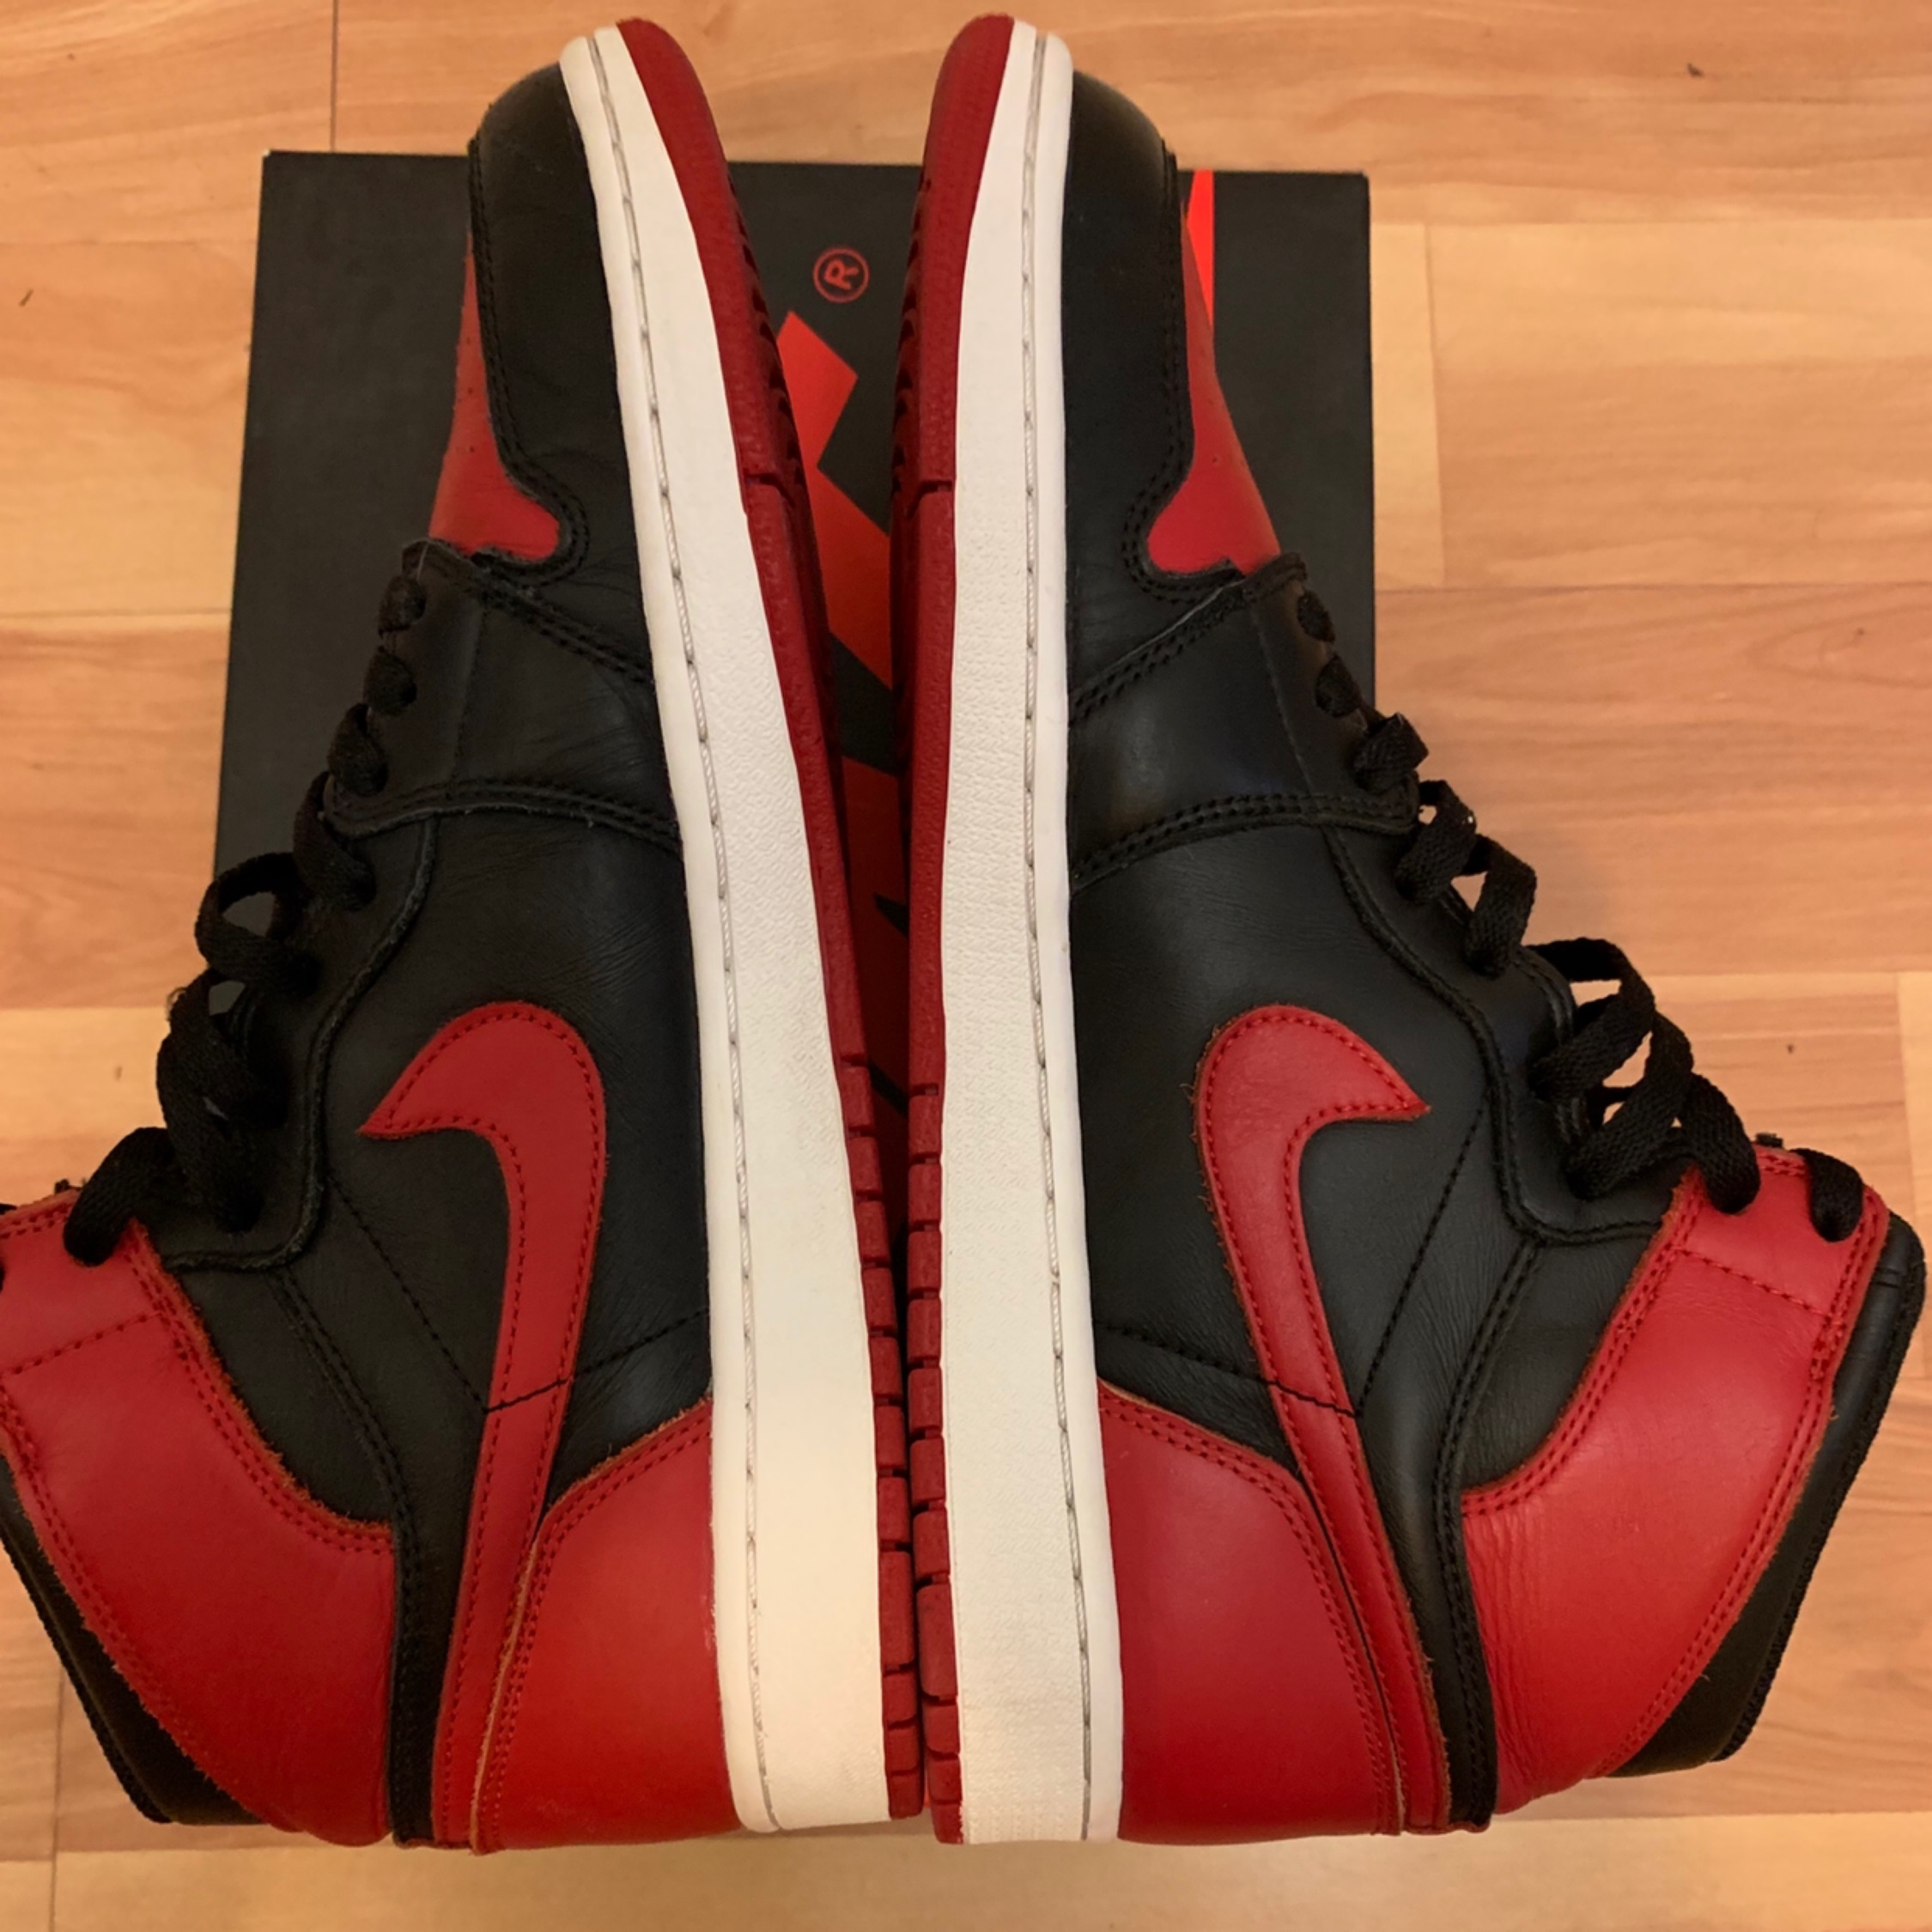 competitive price 8fcc1 b0a49 Air Jordan Og Bred 1 2013 Banned